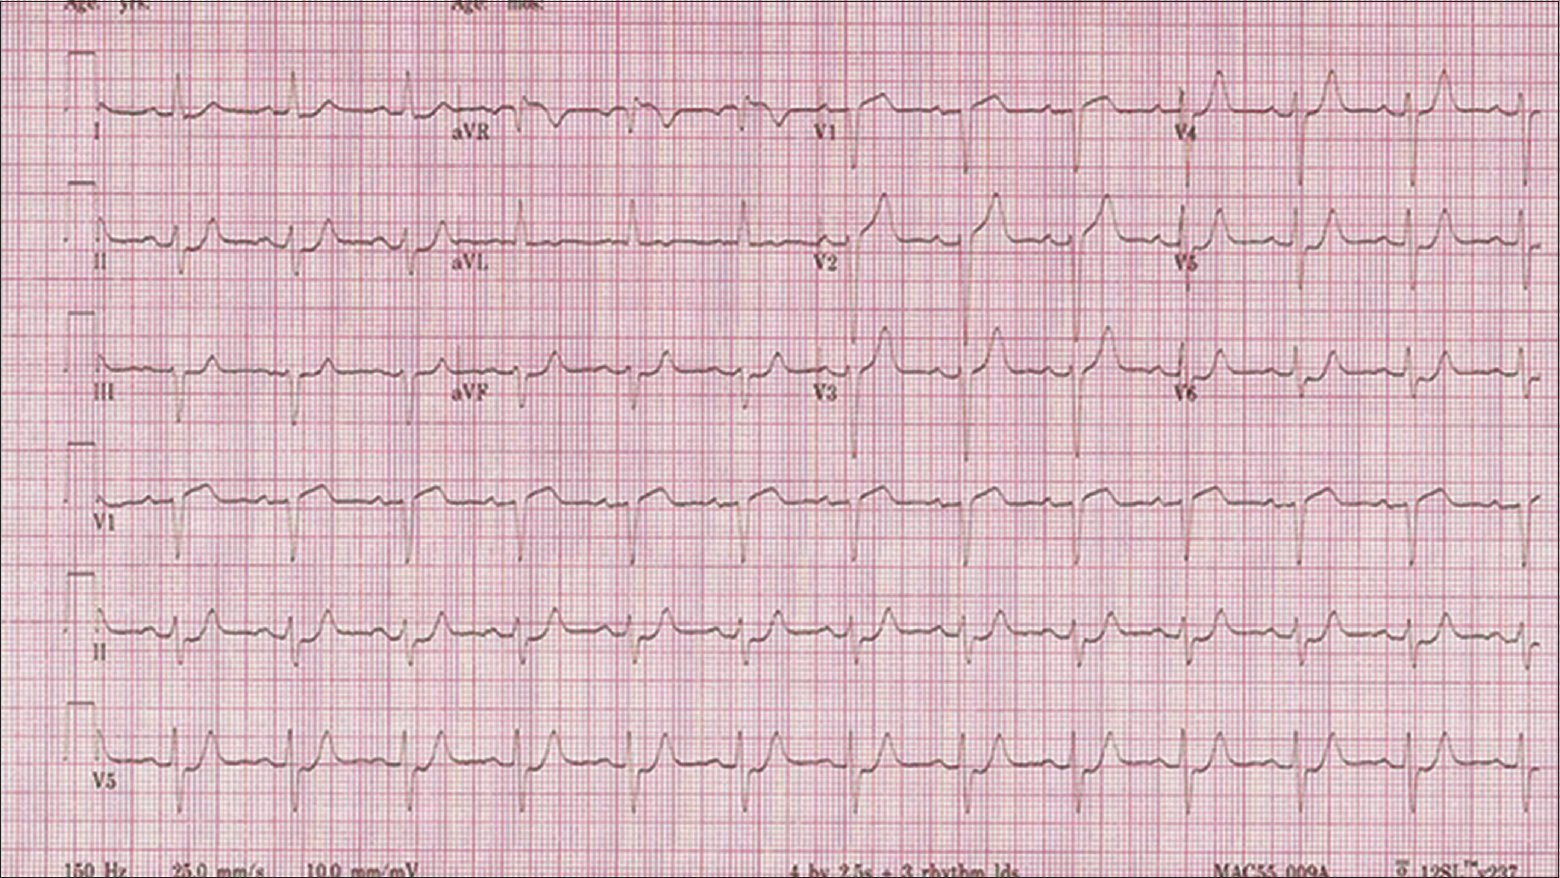 Figure 2: Electrocardiogram recorded during chest pain on the day of presentation.